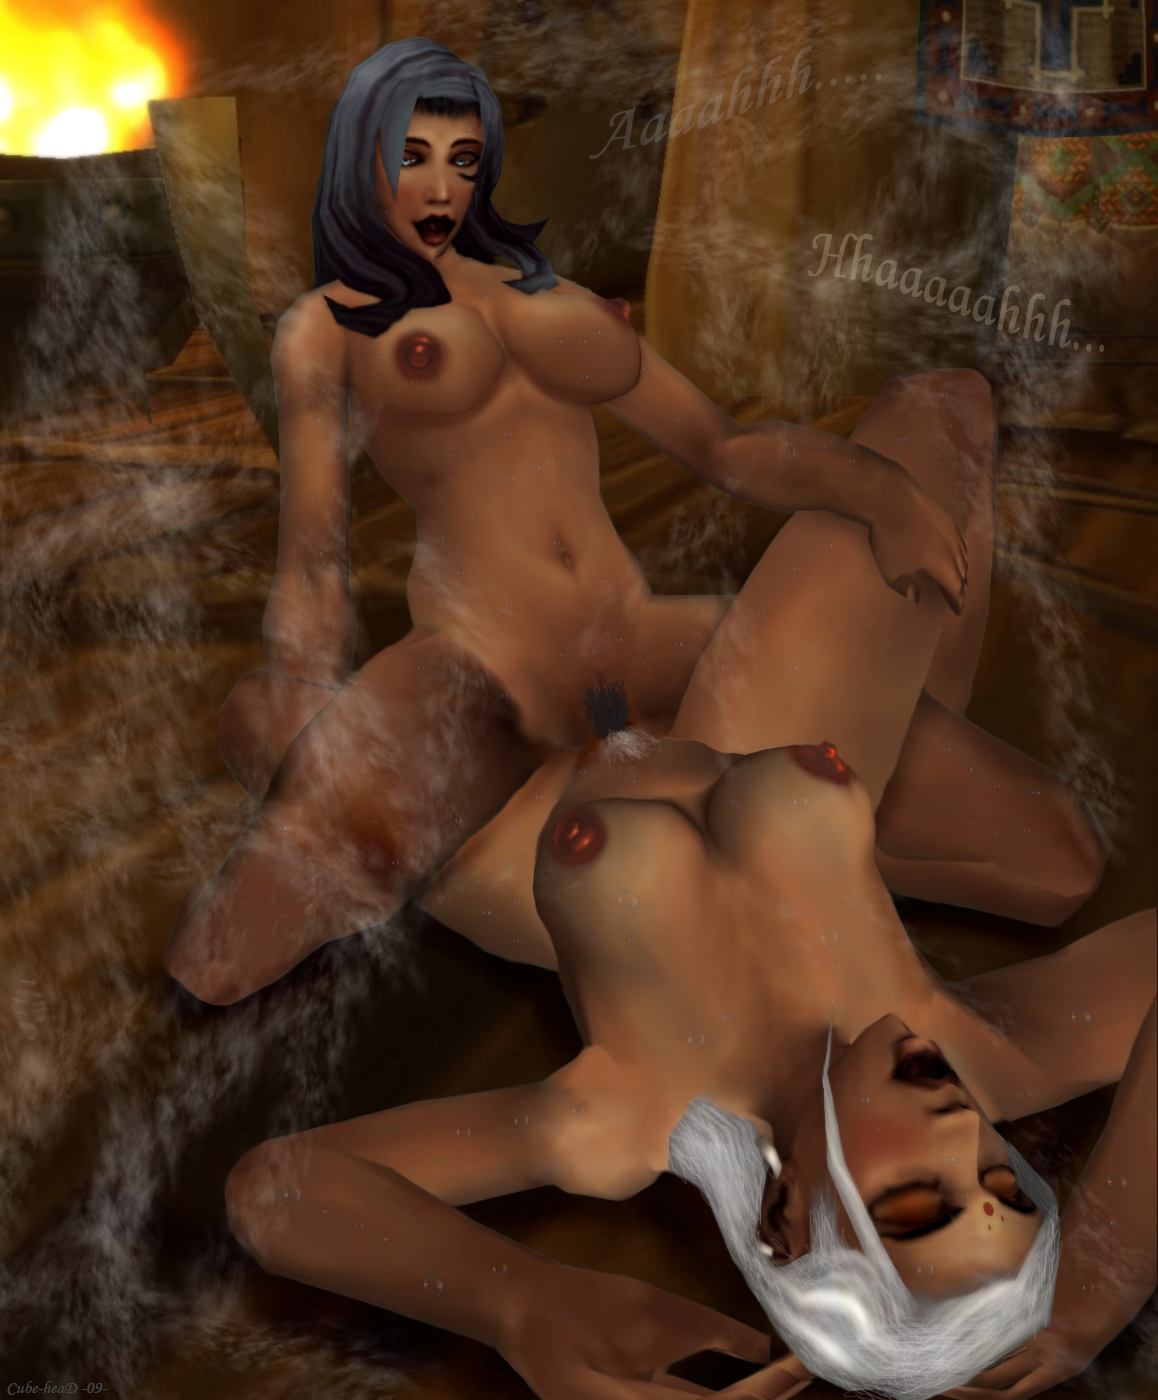 Jungle3dsex pics erotic films